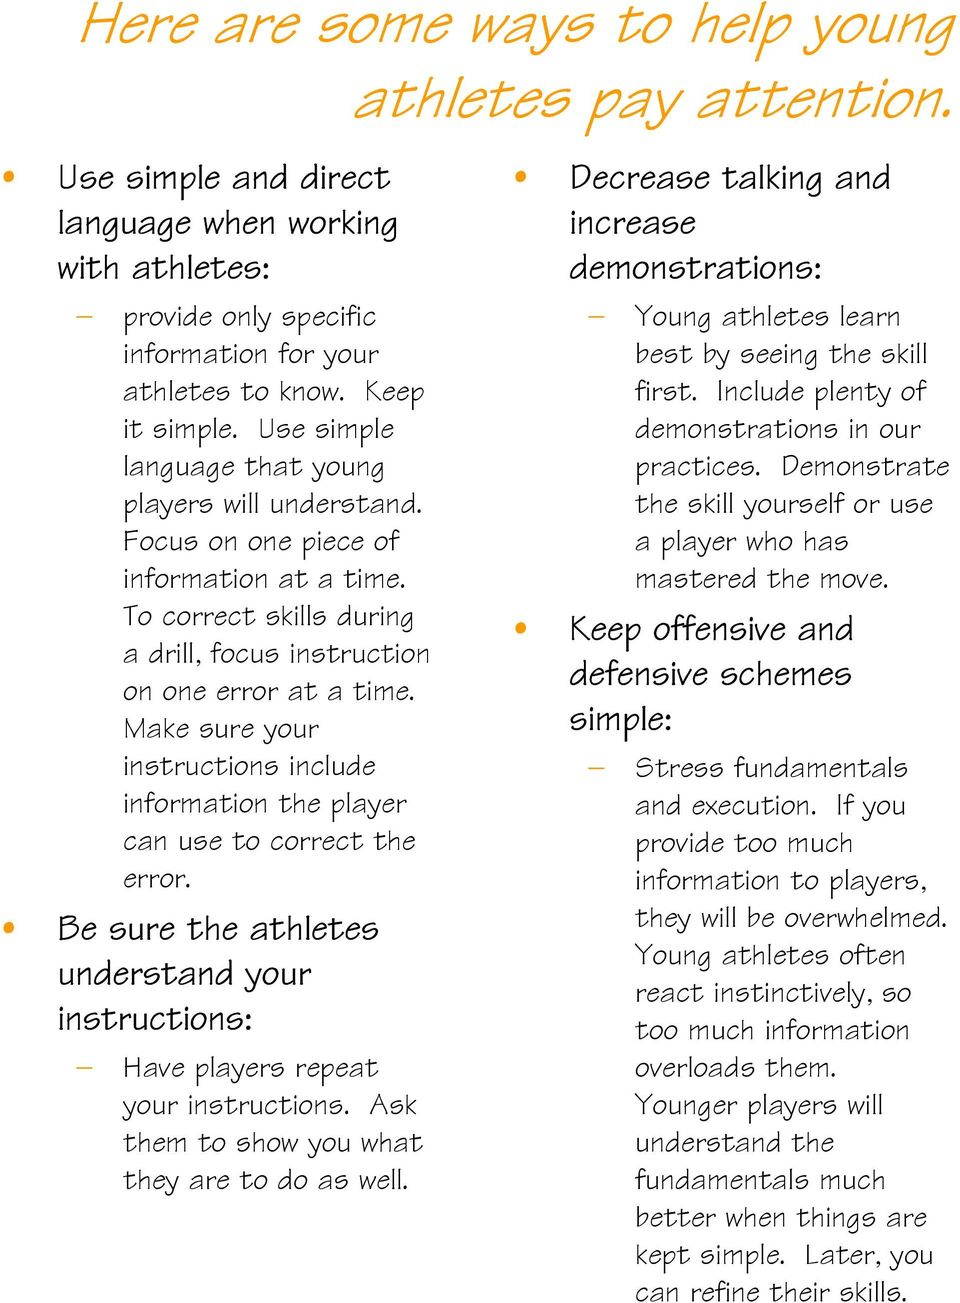 Make sure your instructions include information the player can use to correct the error. Be sure the athletes understand your instructions: Have players repeat your instructions.